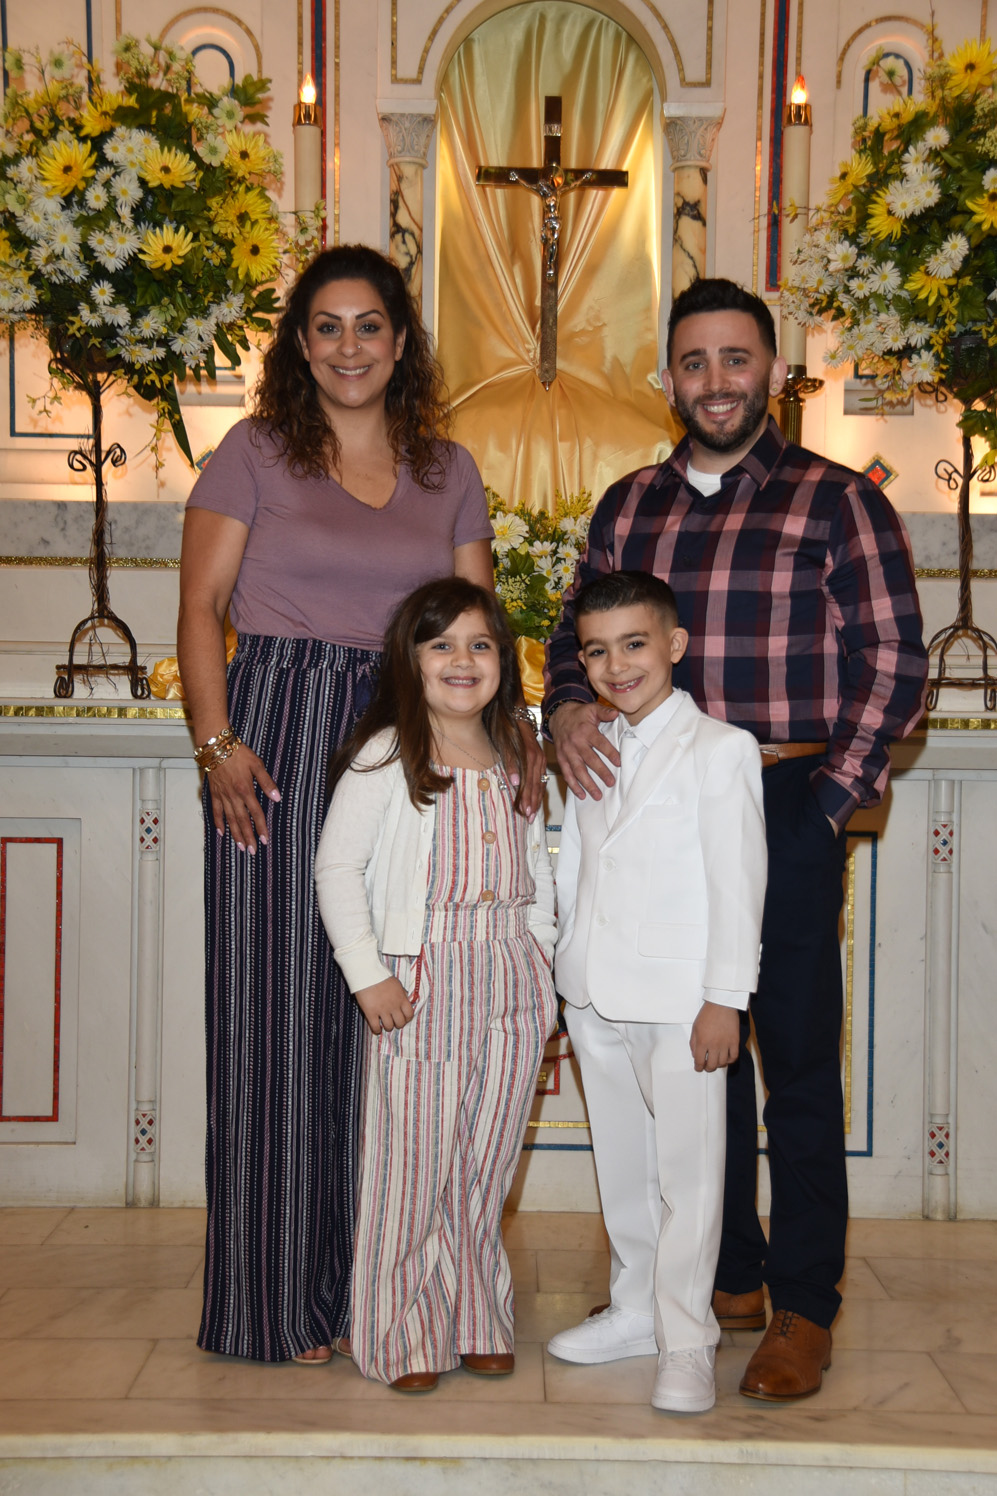 FIRST-COMMUNION-MAY-2-2021-1001001131